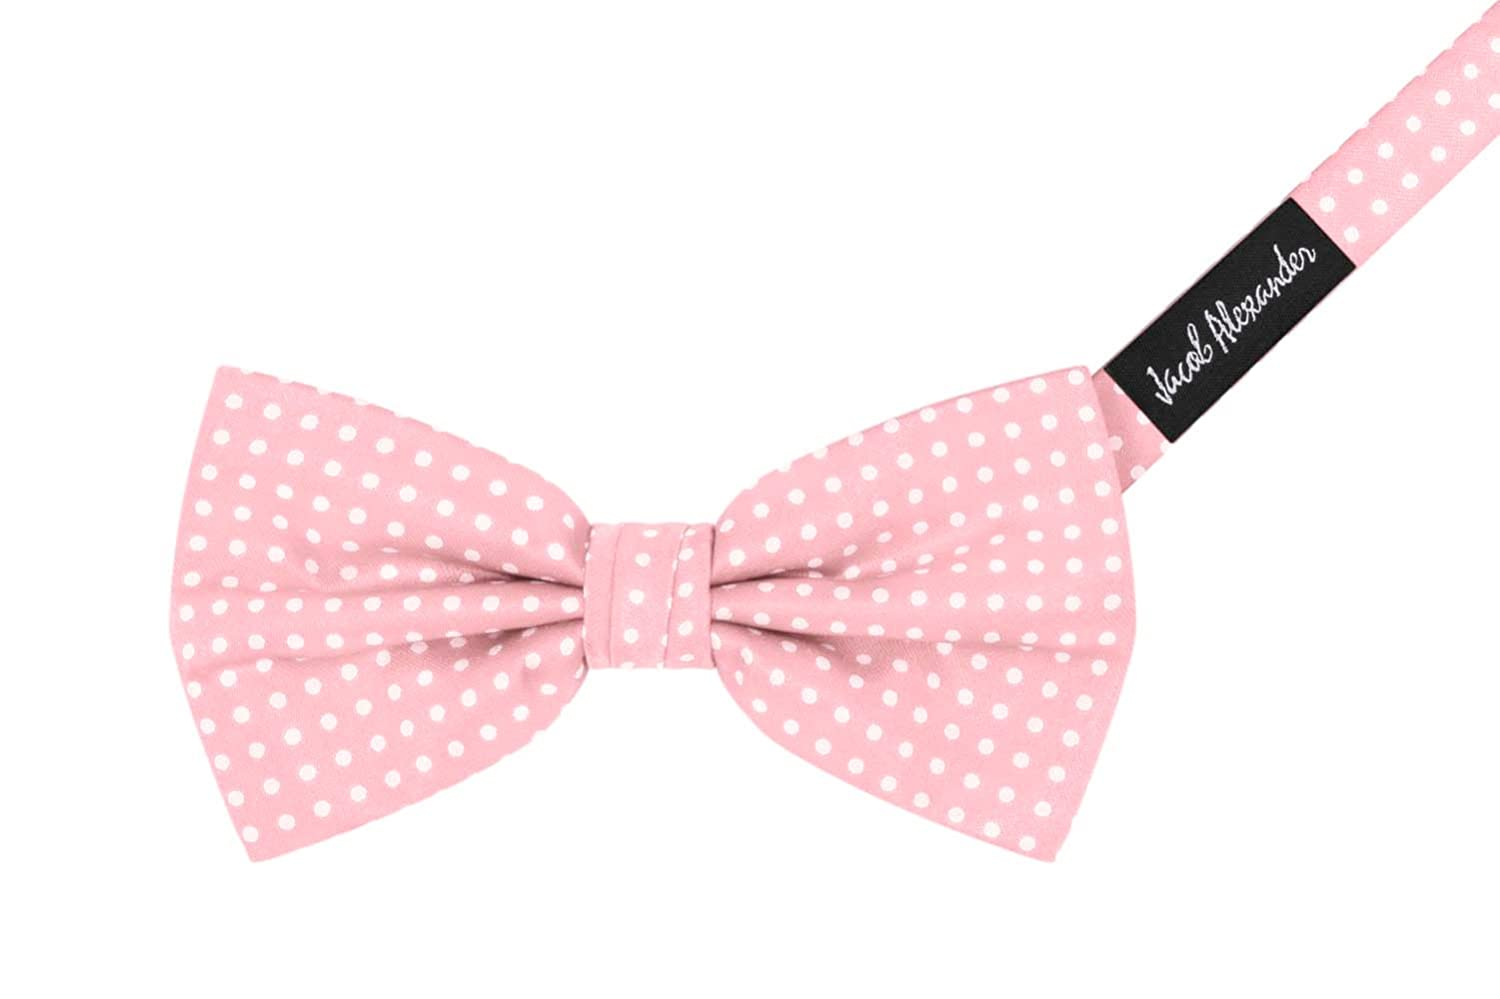 Jacob Alexander Matching Polka Dot Suspenders and Bow Tie - Champagne KIT059-055